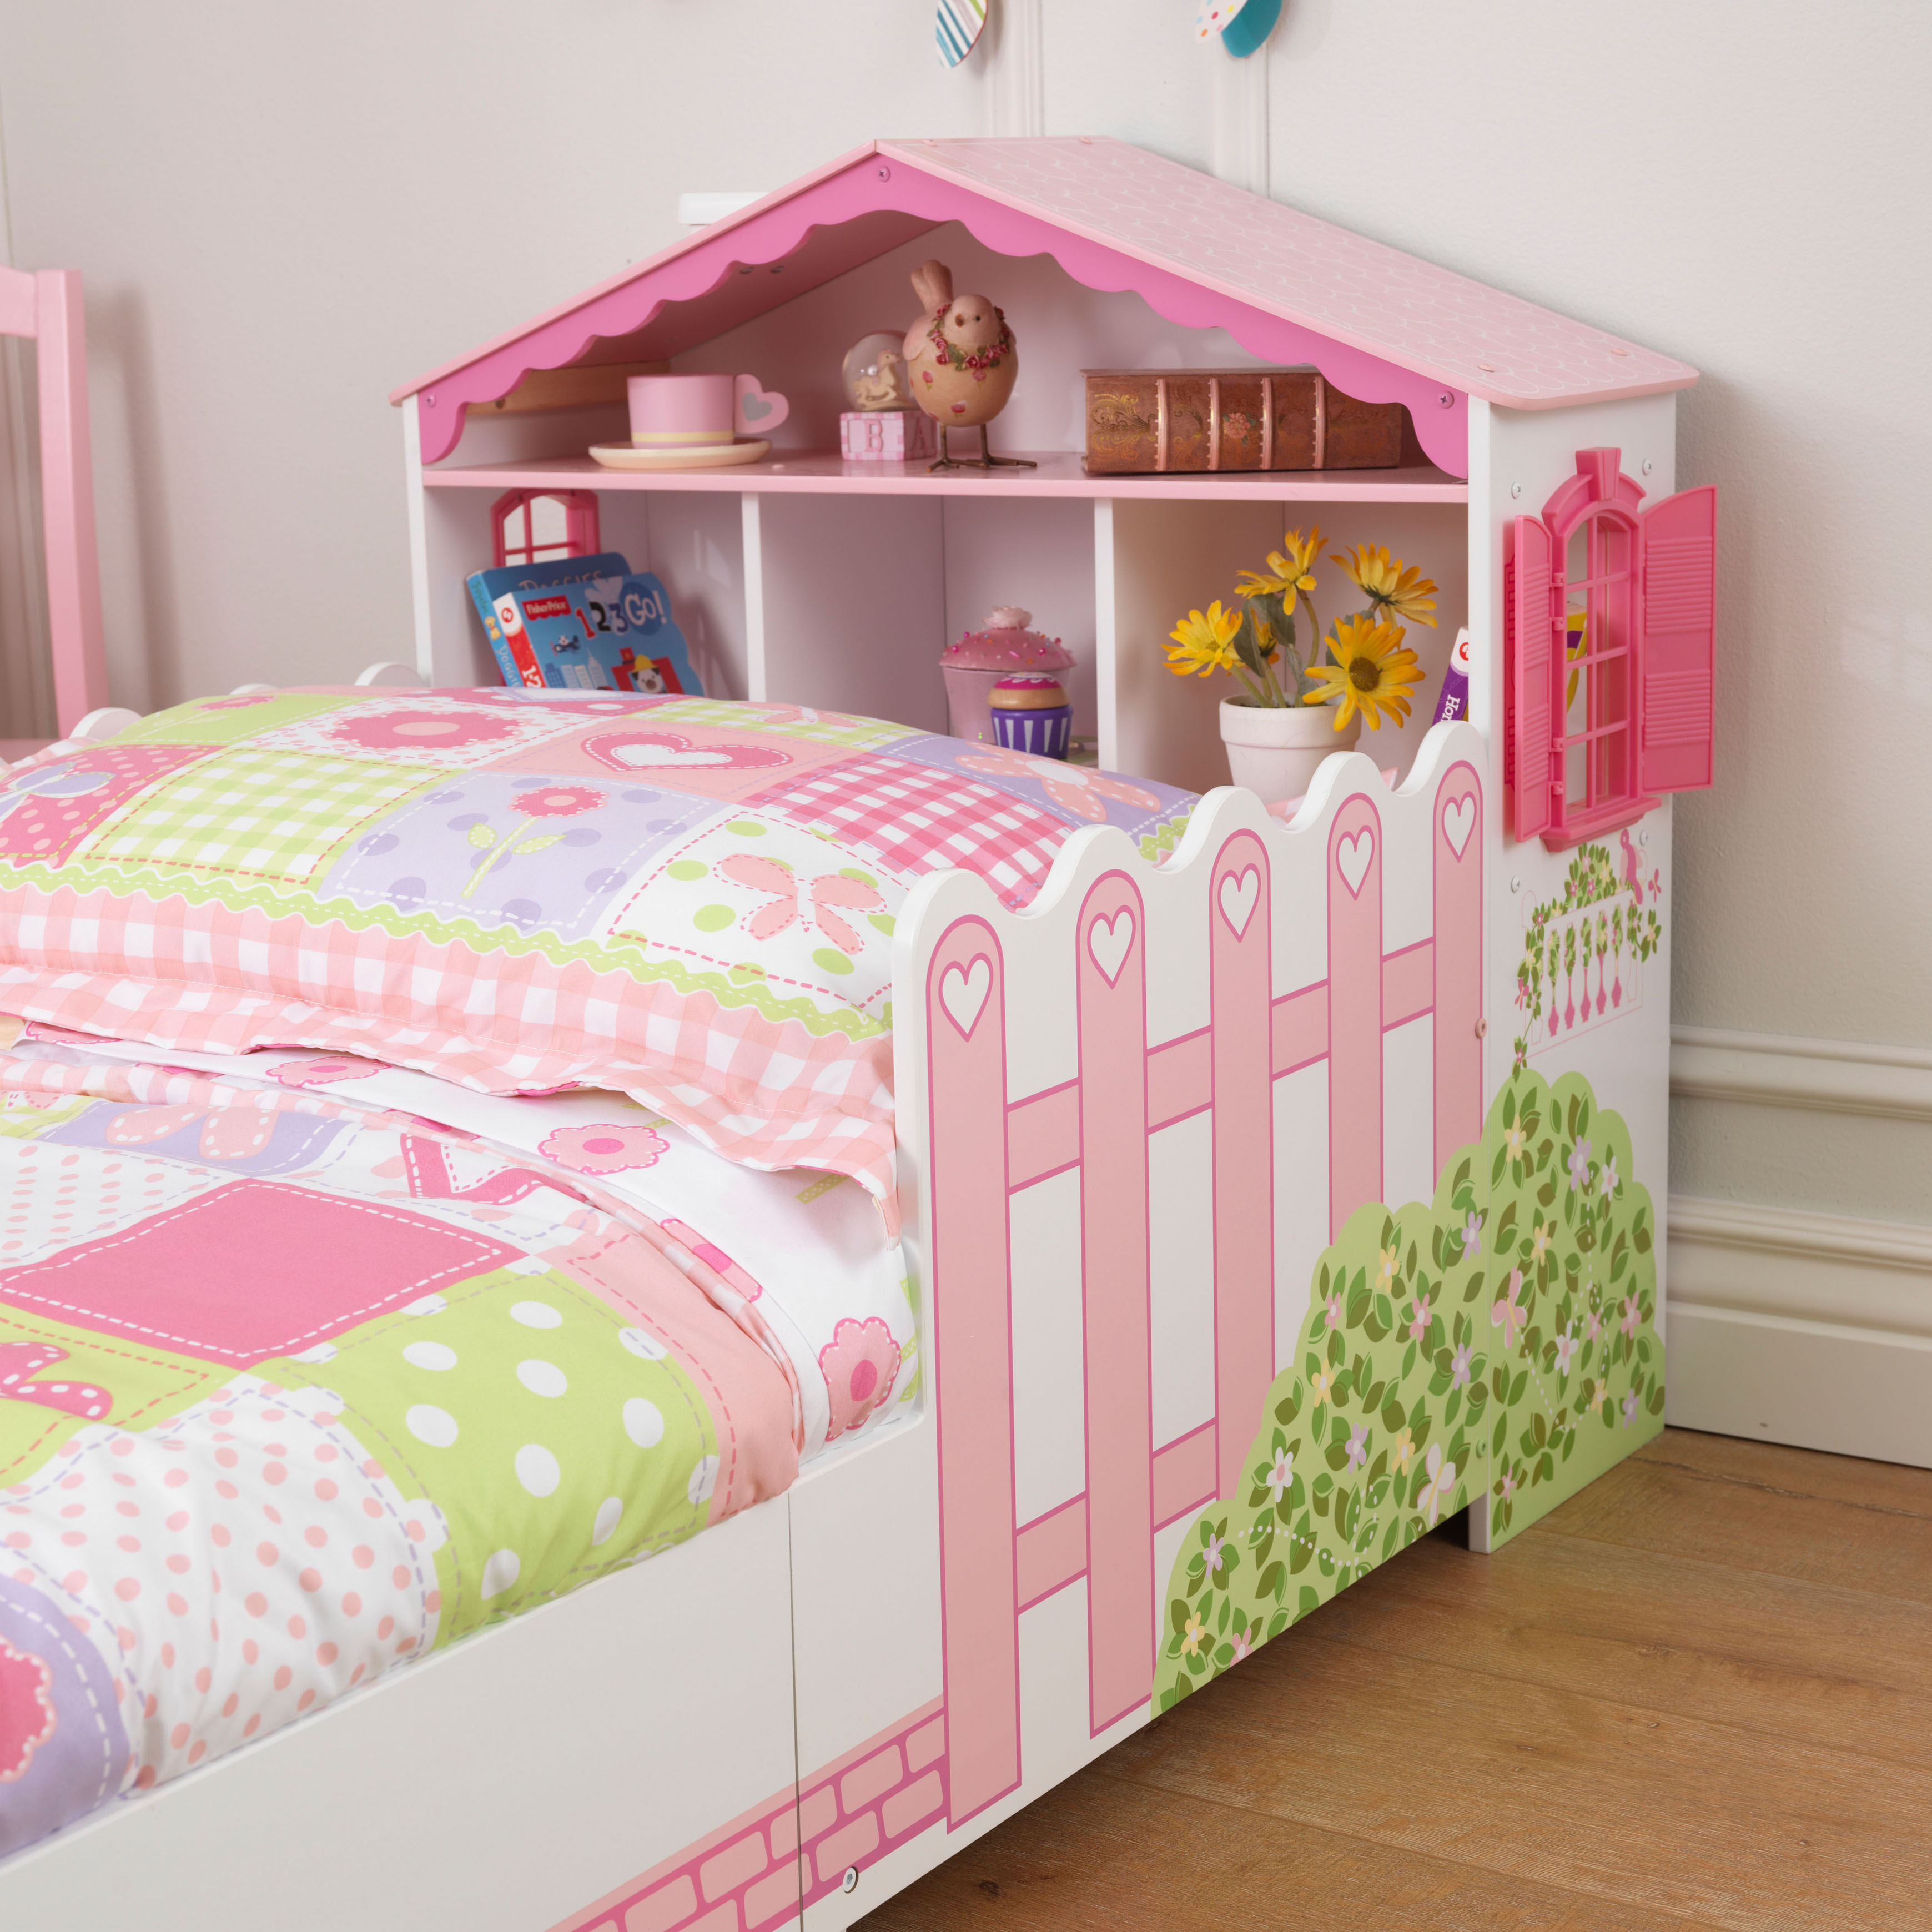 Kidkraft Dollhouse Toddler Bed Pink With Bed Rails